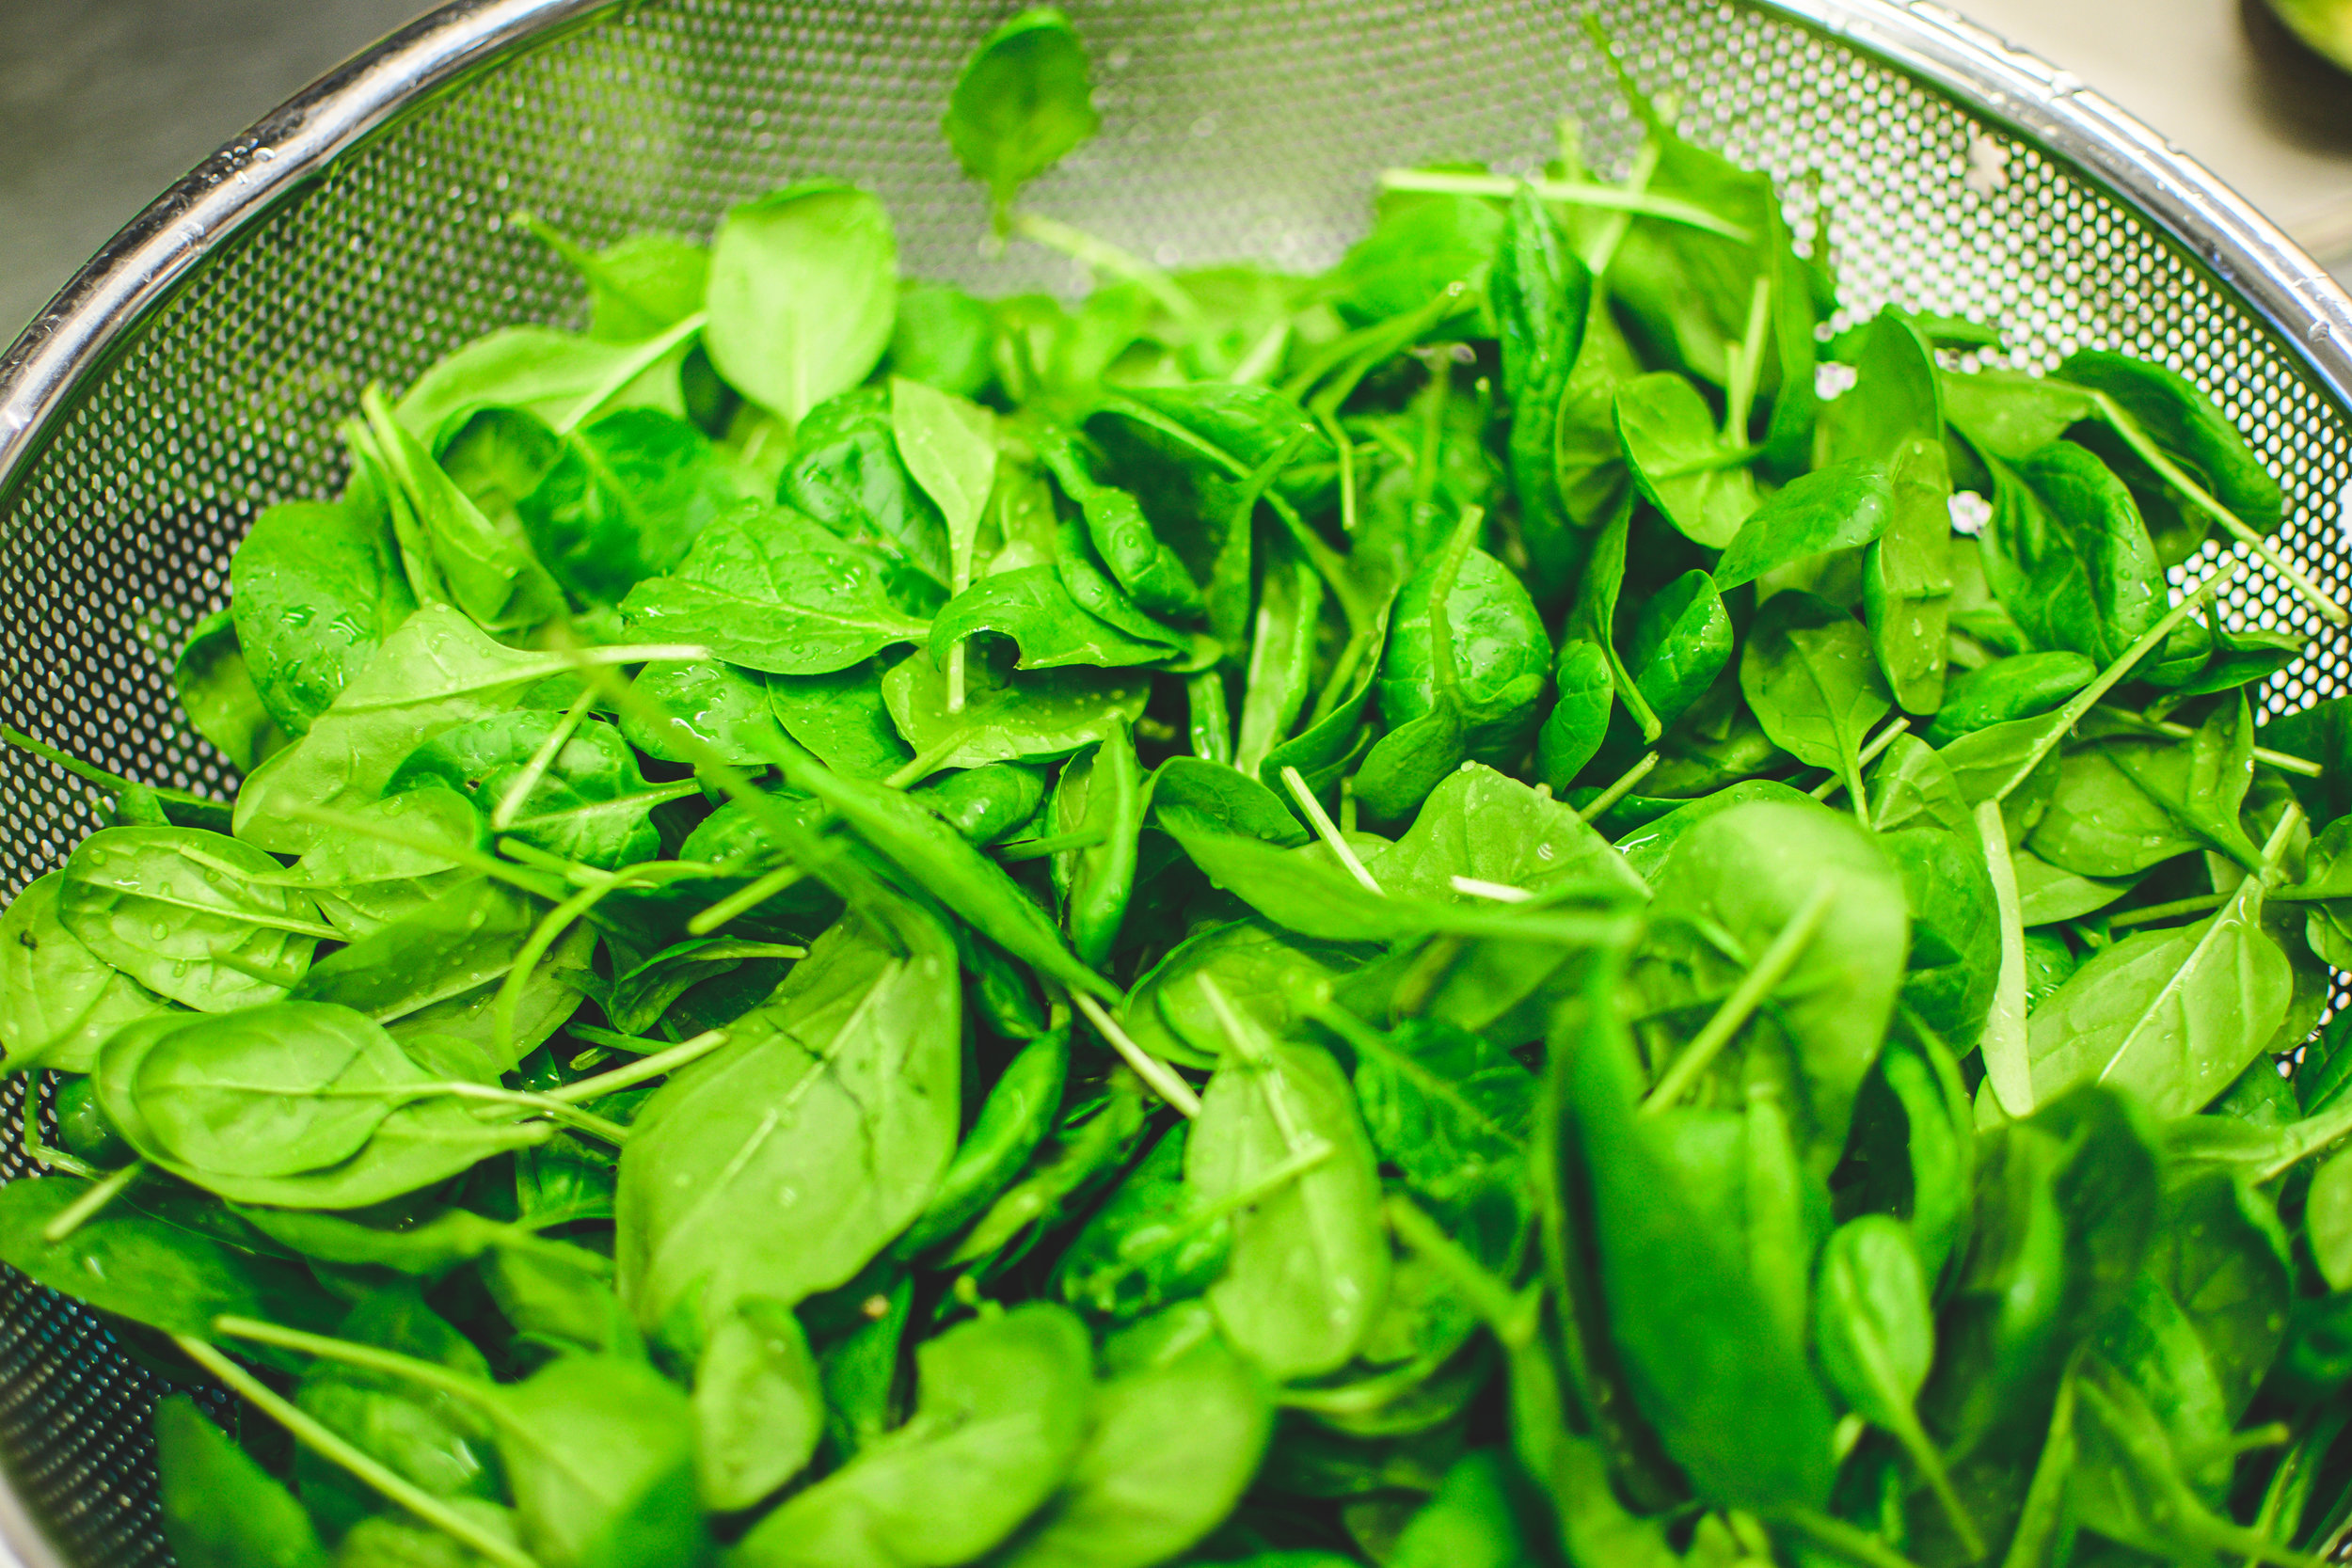 Spinach - Spinach is one of the best places to find dietary magnesium. Magnesium is needed for energy metabolism, maintaining muscle and nerve function, a regular heart rhythm, healthy immune system and helps regulate blood pressure. Spinach is also high in iron and calcium.